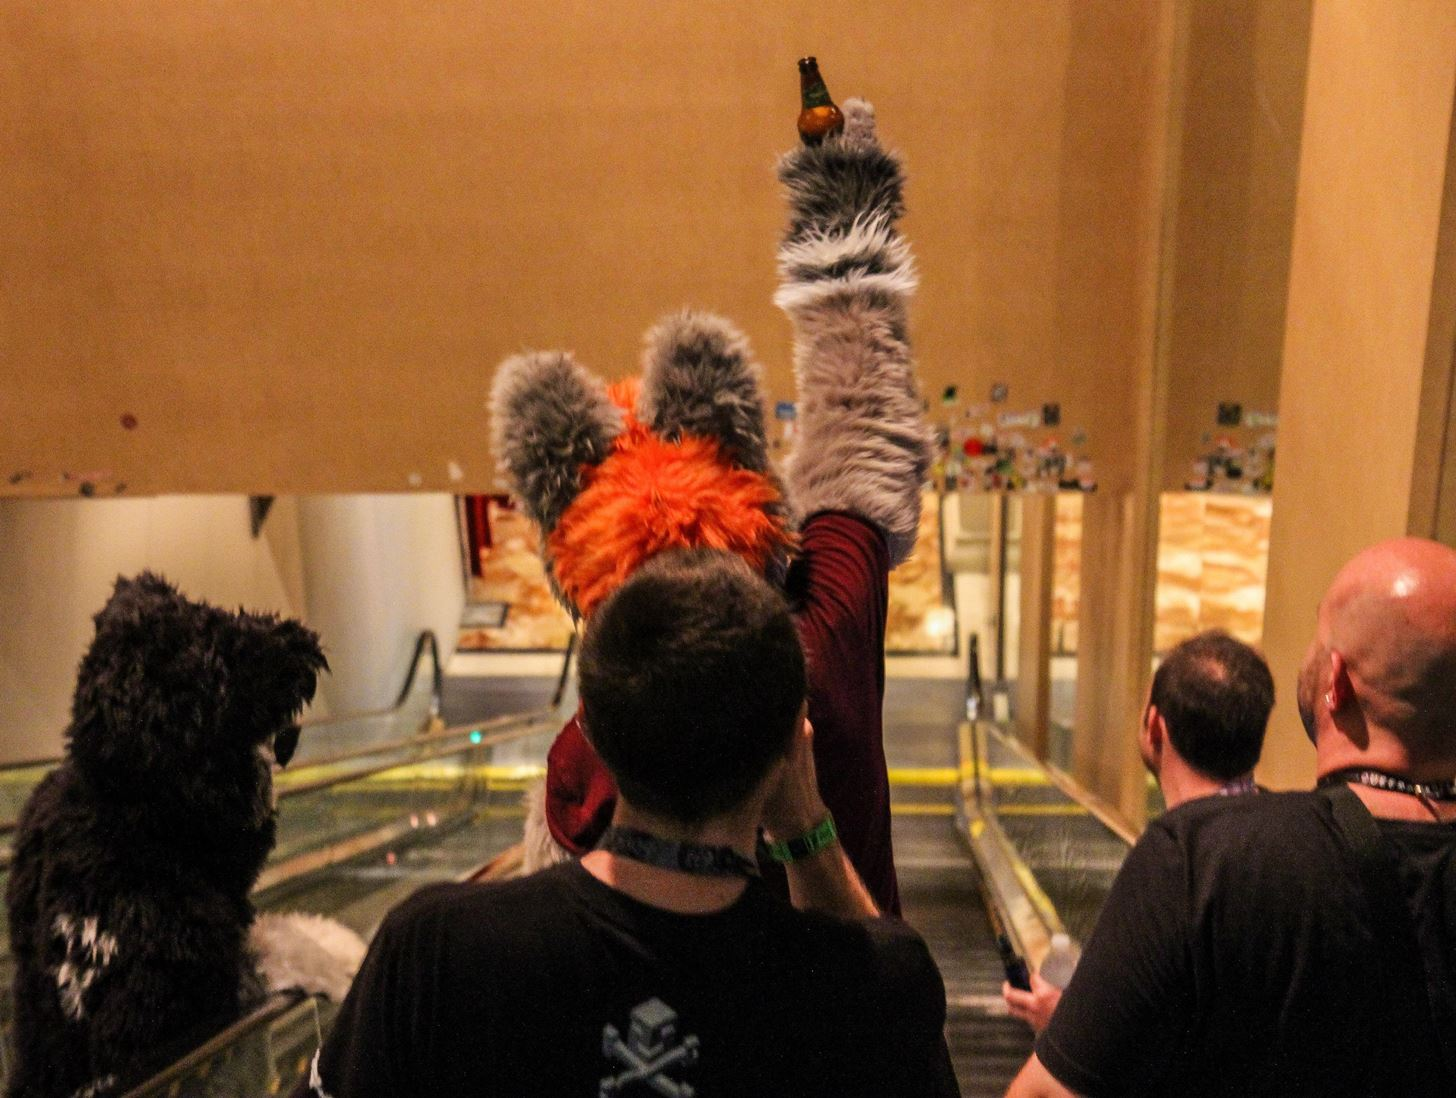 How to Attend Defcon Without Looking Like a Noob or Spending a Fortune